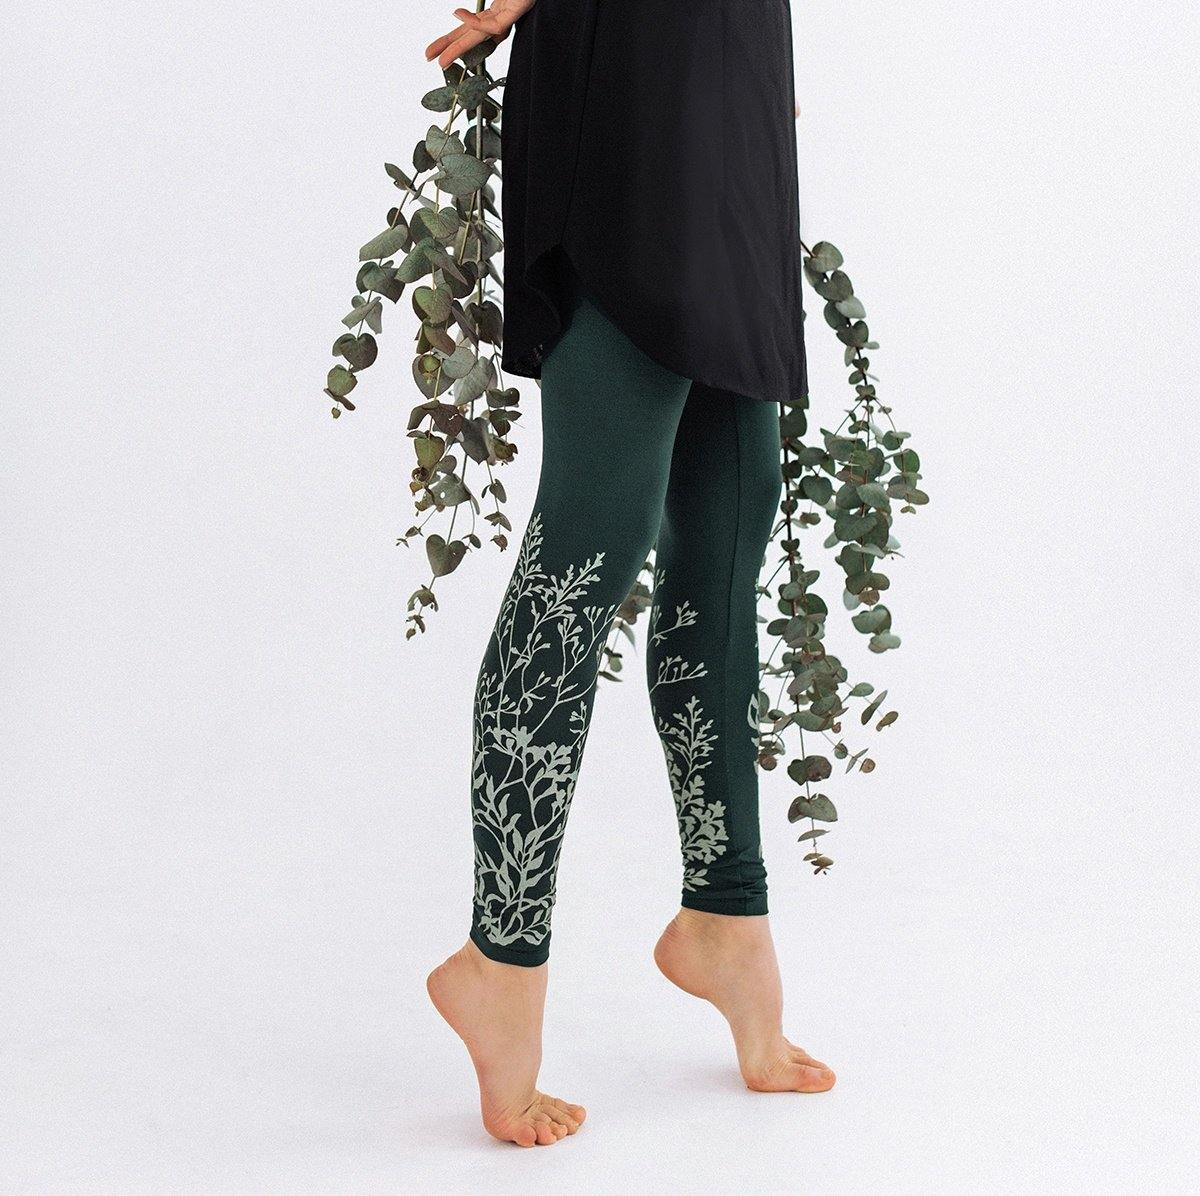 Green leggings for women Wild plants - ZIB*